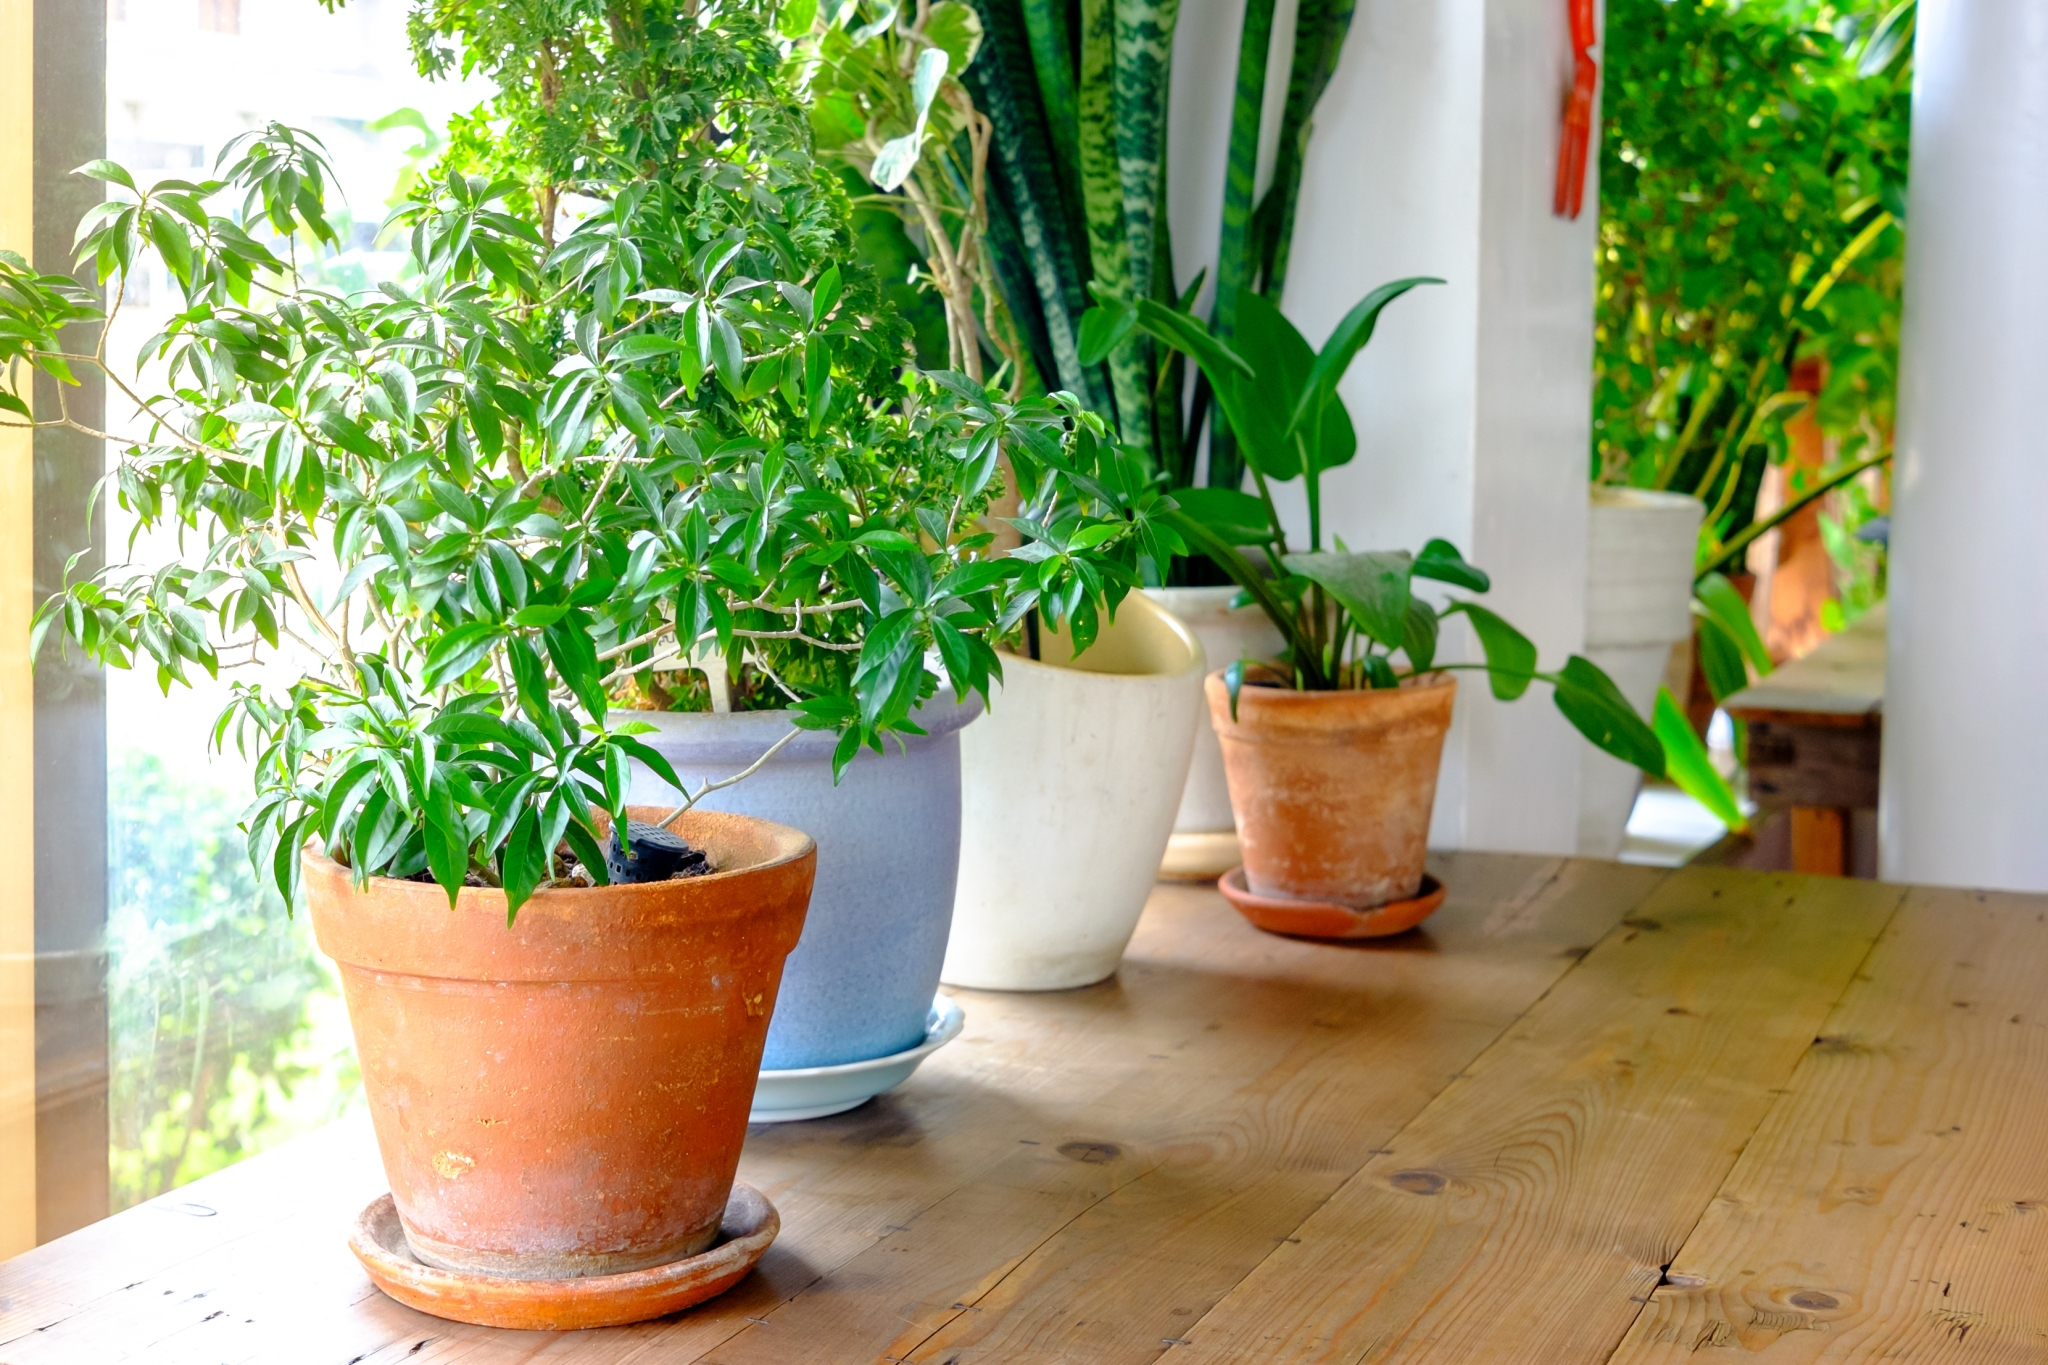 5 low-maintenance plants that can purify the air in your ... on inside home goods, inside home art, inside home backgrounds, inside home decorations, inside home lighting, inside home photography, inside home bugs, inside home flowers, inside home walls, inside home trees, inside home gardens, inside home design, inside home christmas, inside home fire,